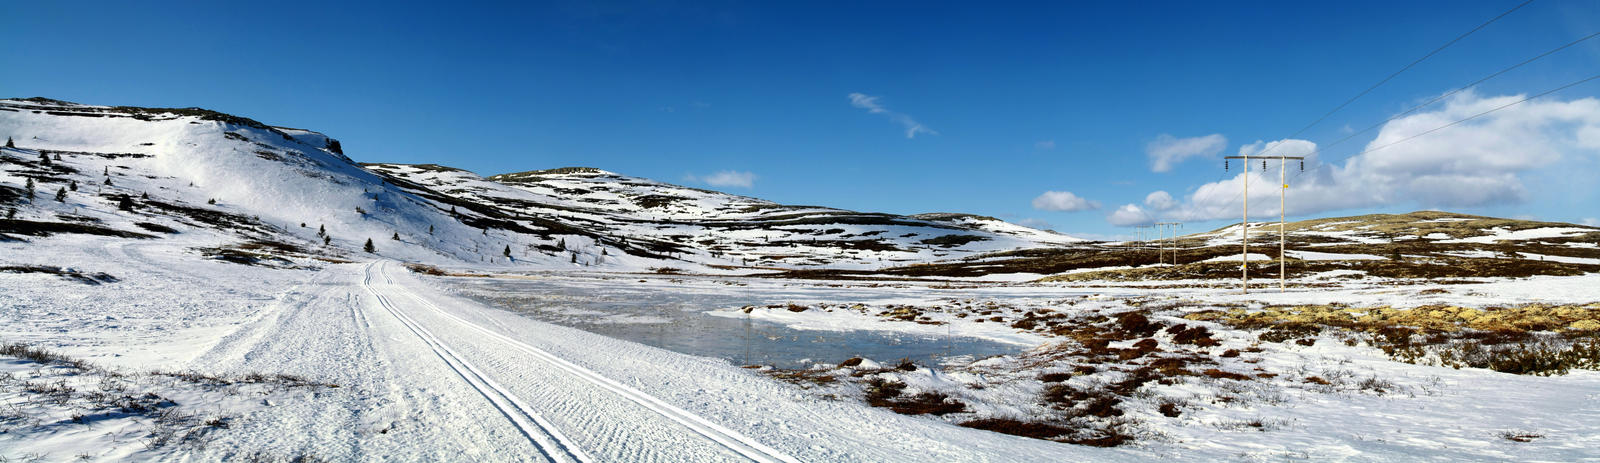 Cross Country Ski Trails Panorama by scwl